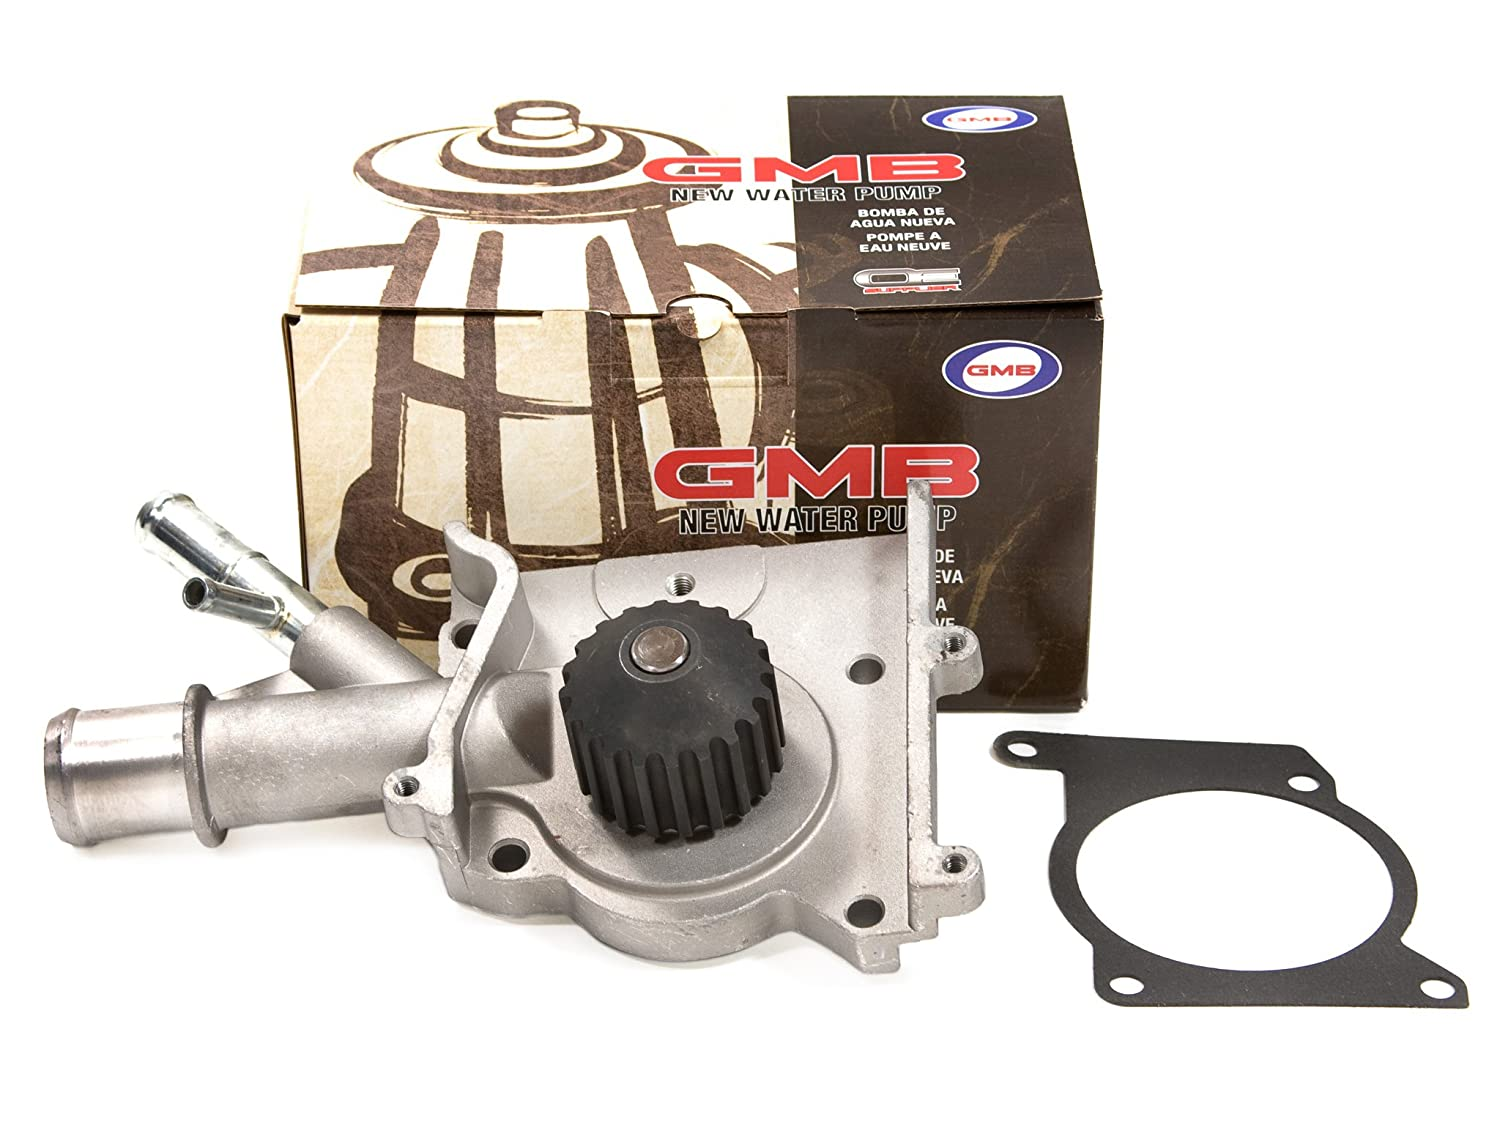 Amazon.com: Evergreen TBK283WP2 Fits 00-04 Ford Focus 2.0L SOHC VIN Code P Timing Belt Kit GMB Water Pump: Automotive